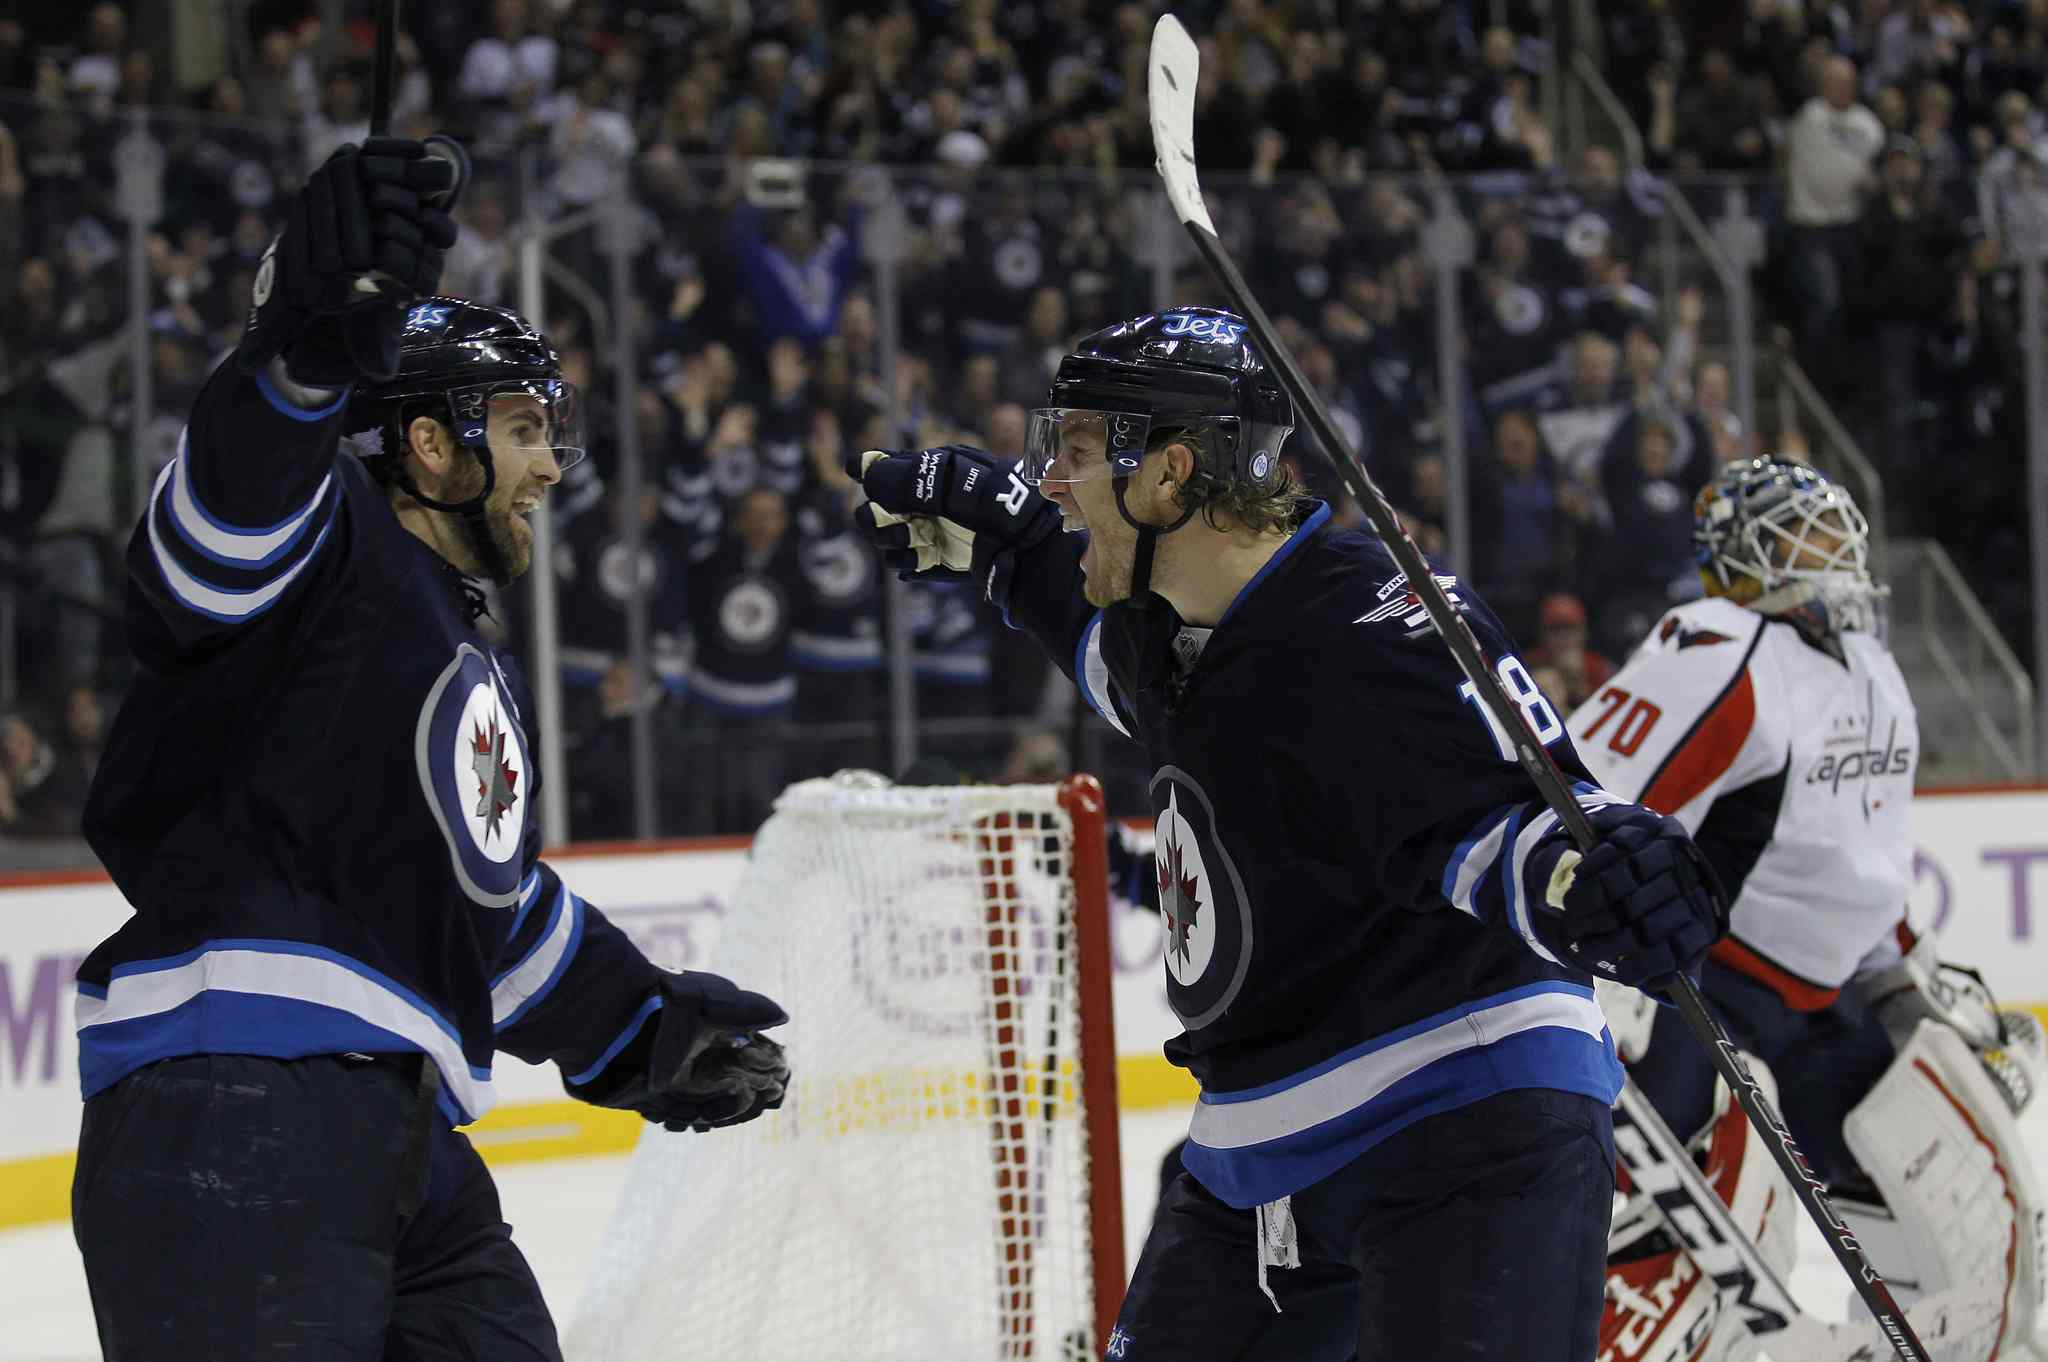 Winnipeg Jets captain Andrew Ladd (left) and teammate Bryan Little celebrate Little's goal against Washington Capitals goaltender Braden Holtby during the second period.